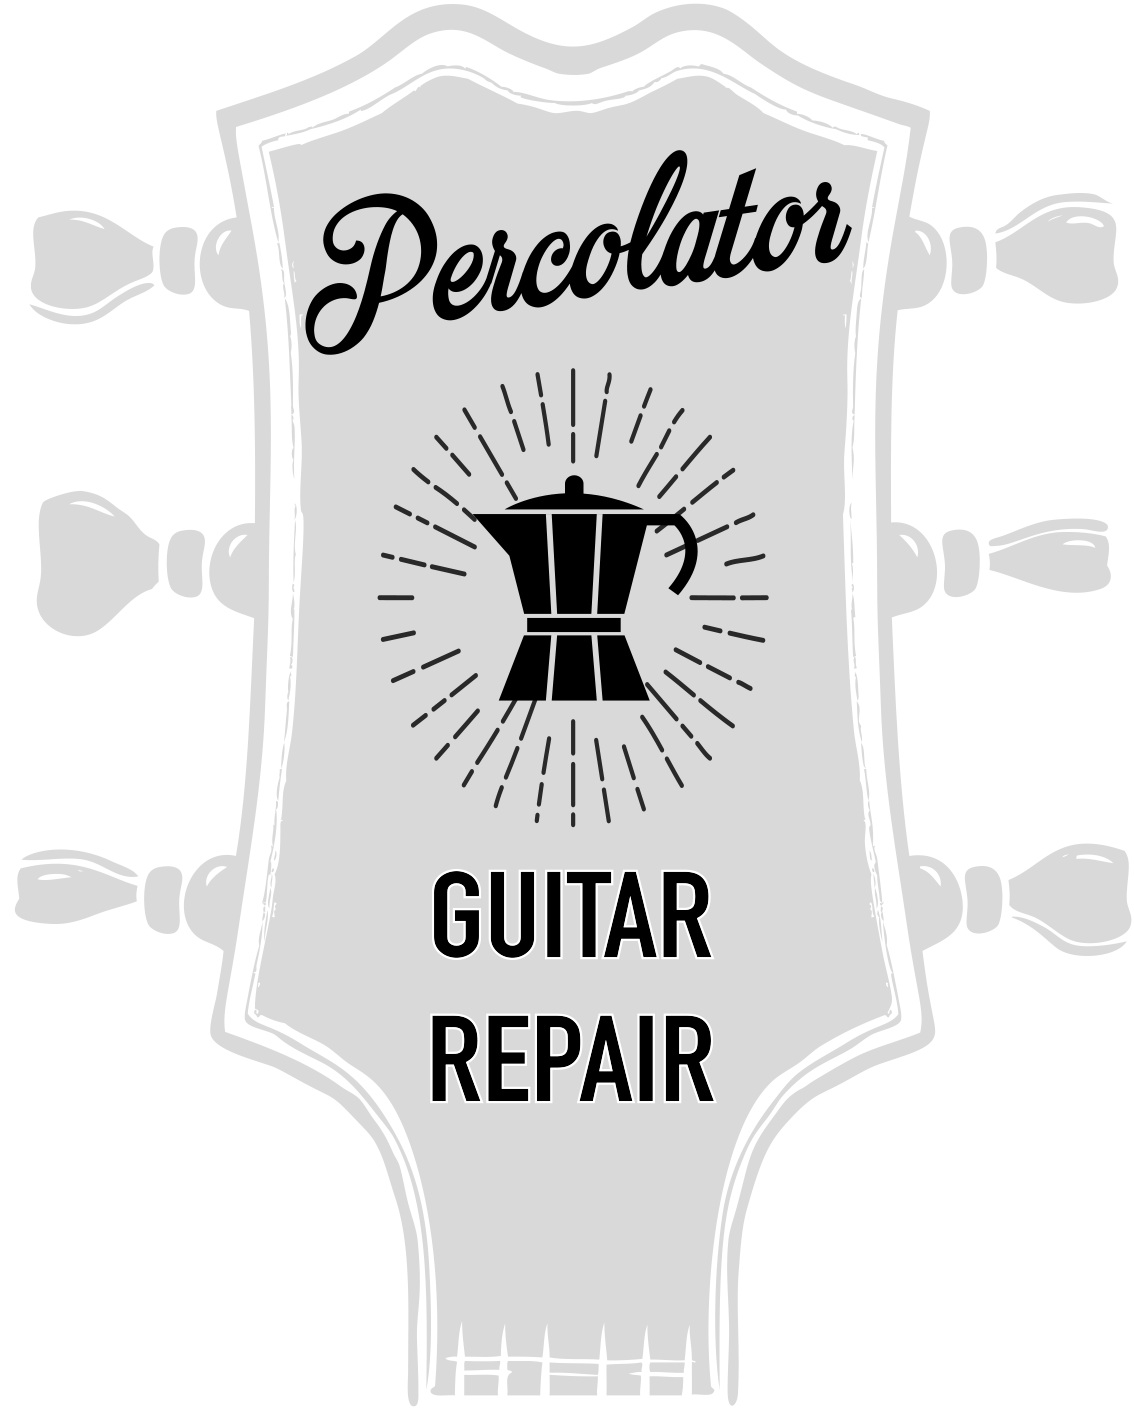 Percolator Guitar Repair